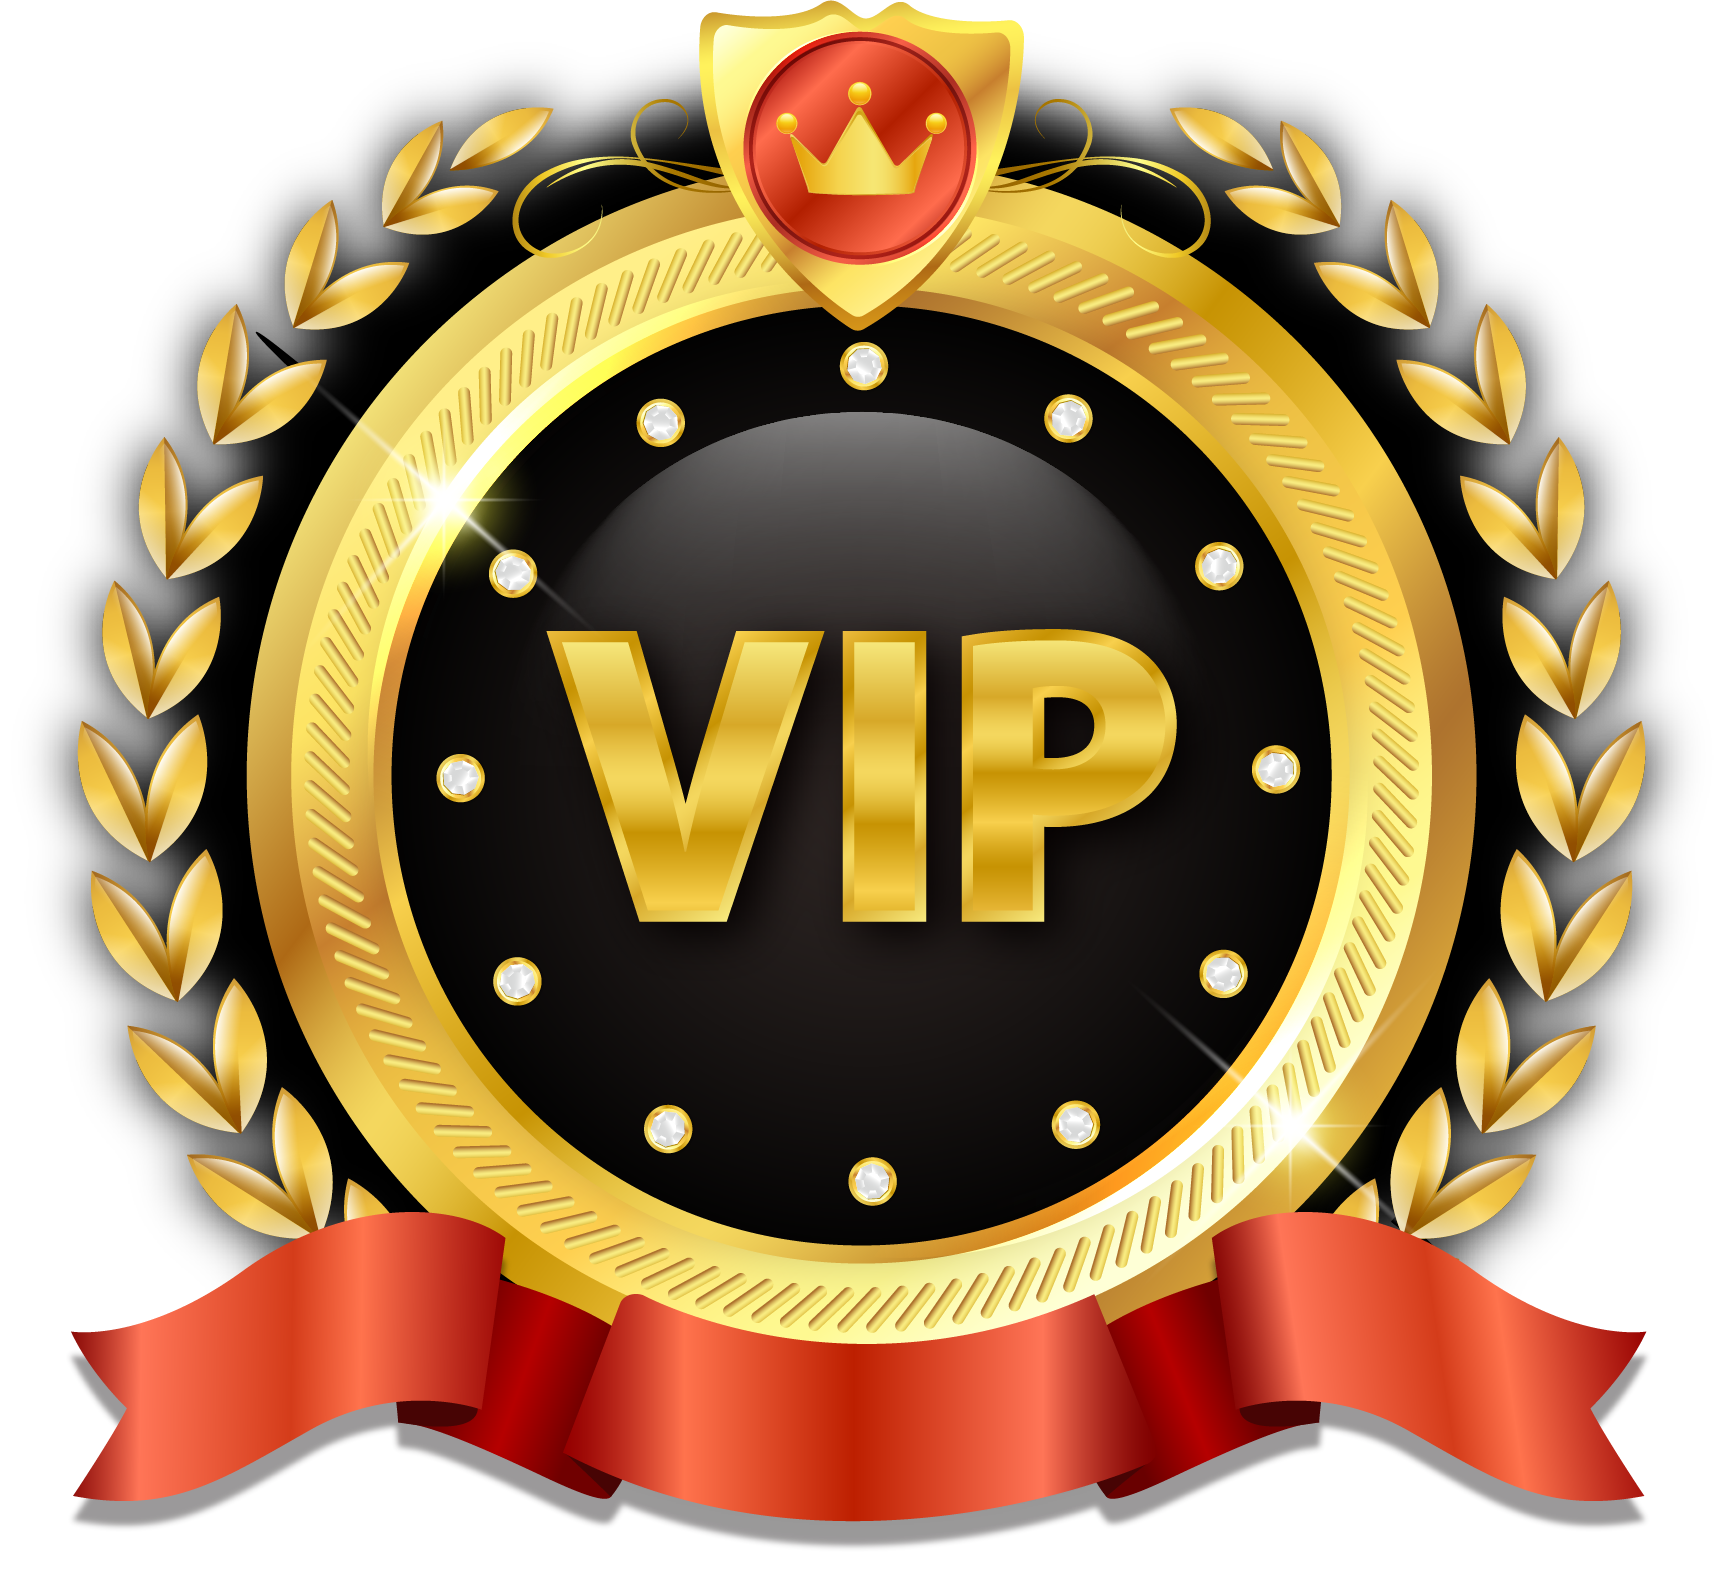 Vip badge png. Euclidean vector very important